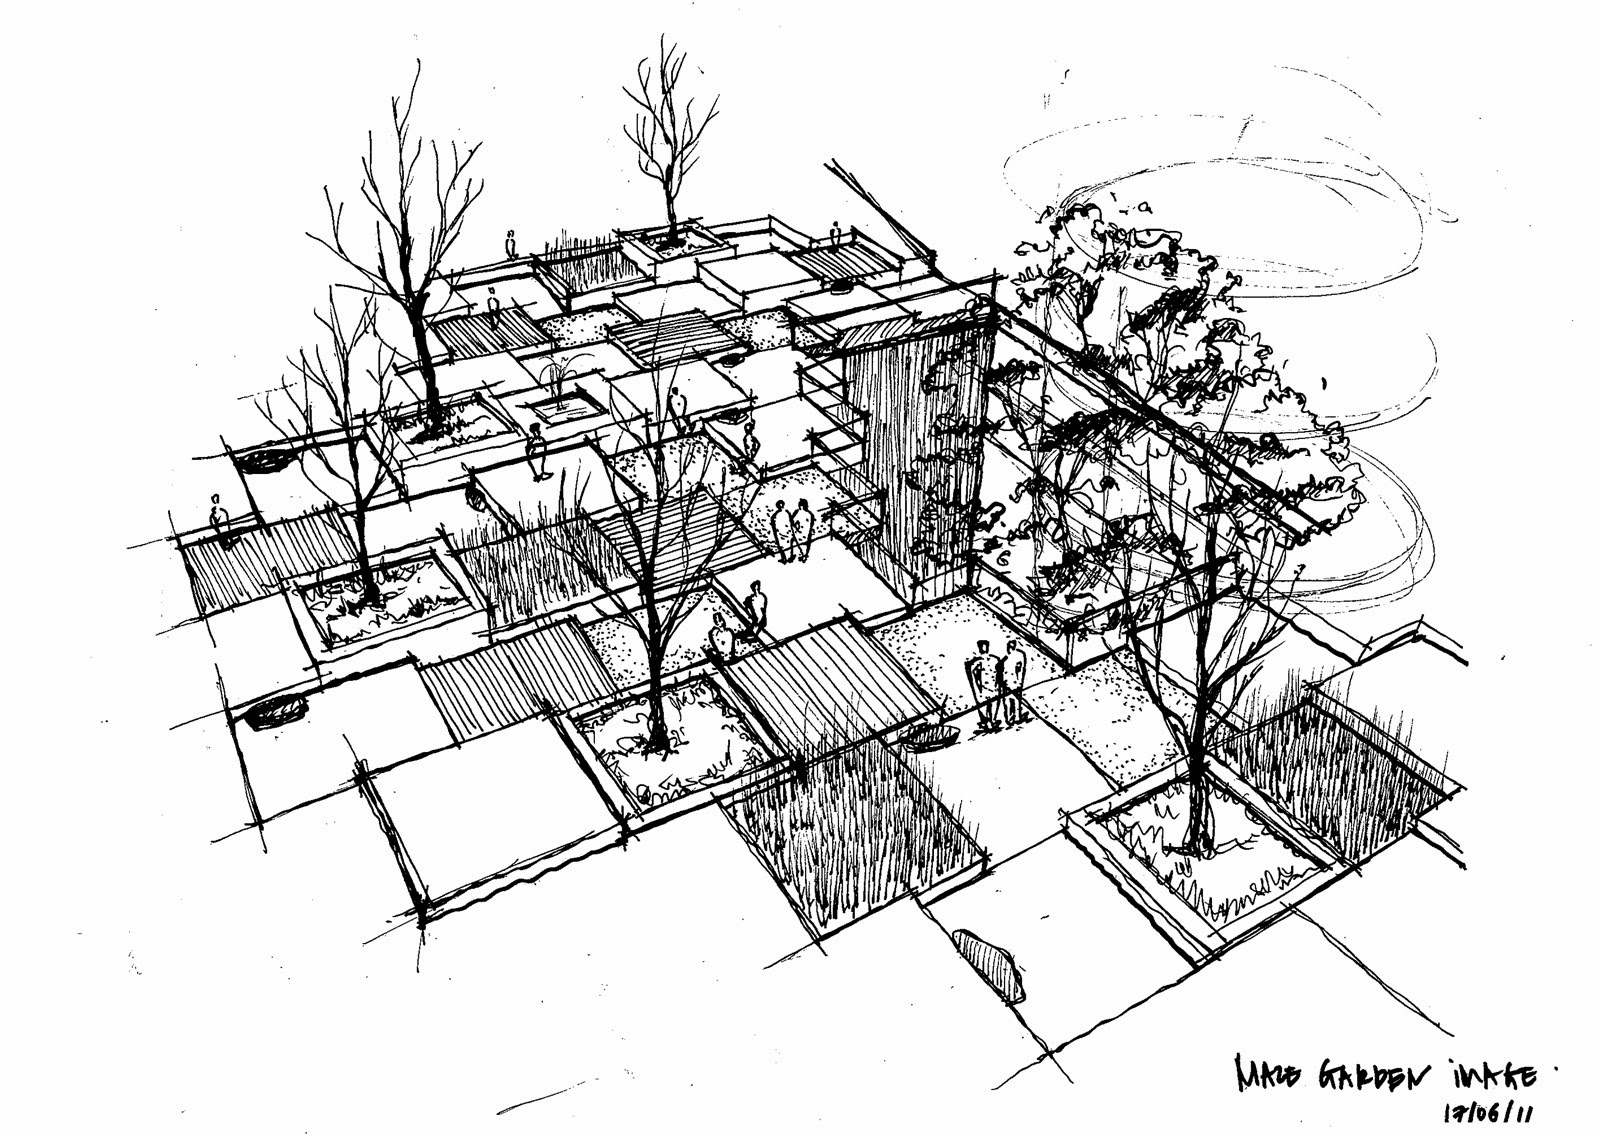 Architecture reinforce space character for Spaces landscape architecture